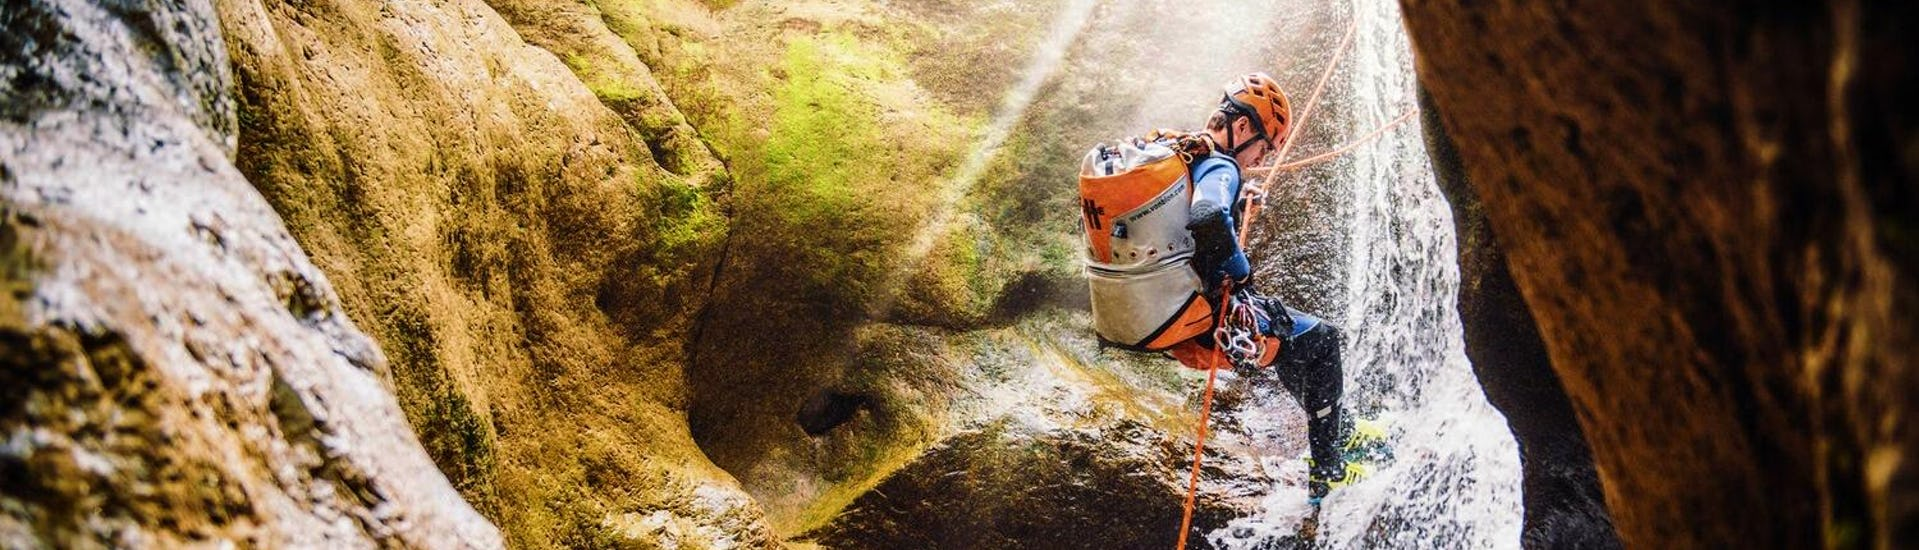 canyoning-for-sporty-nature-lovers-deep-roots-adventures-hero